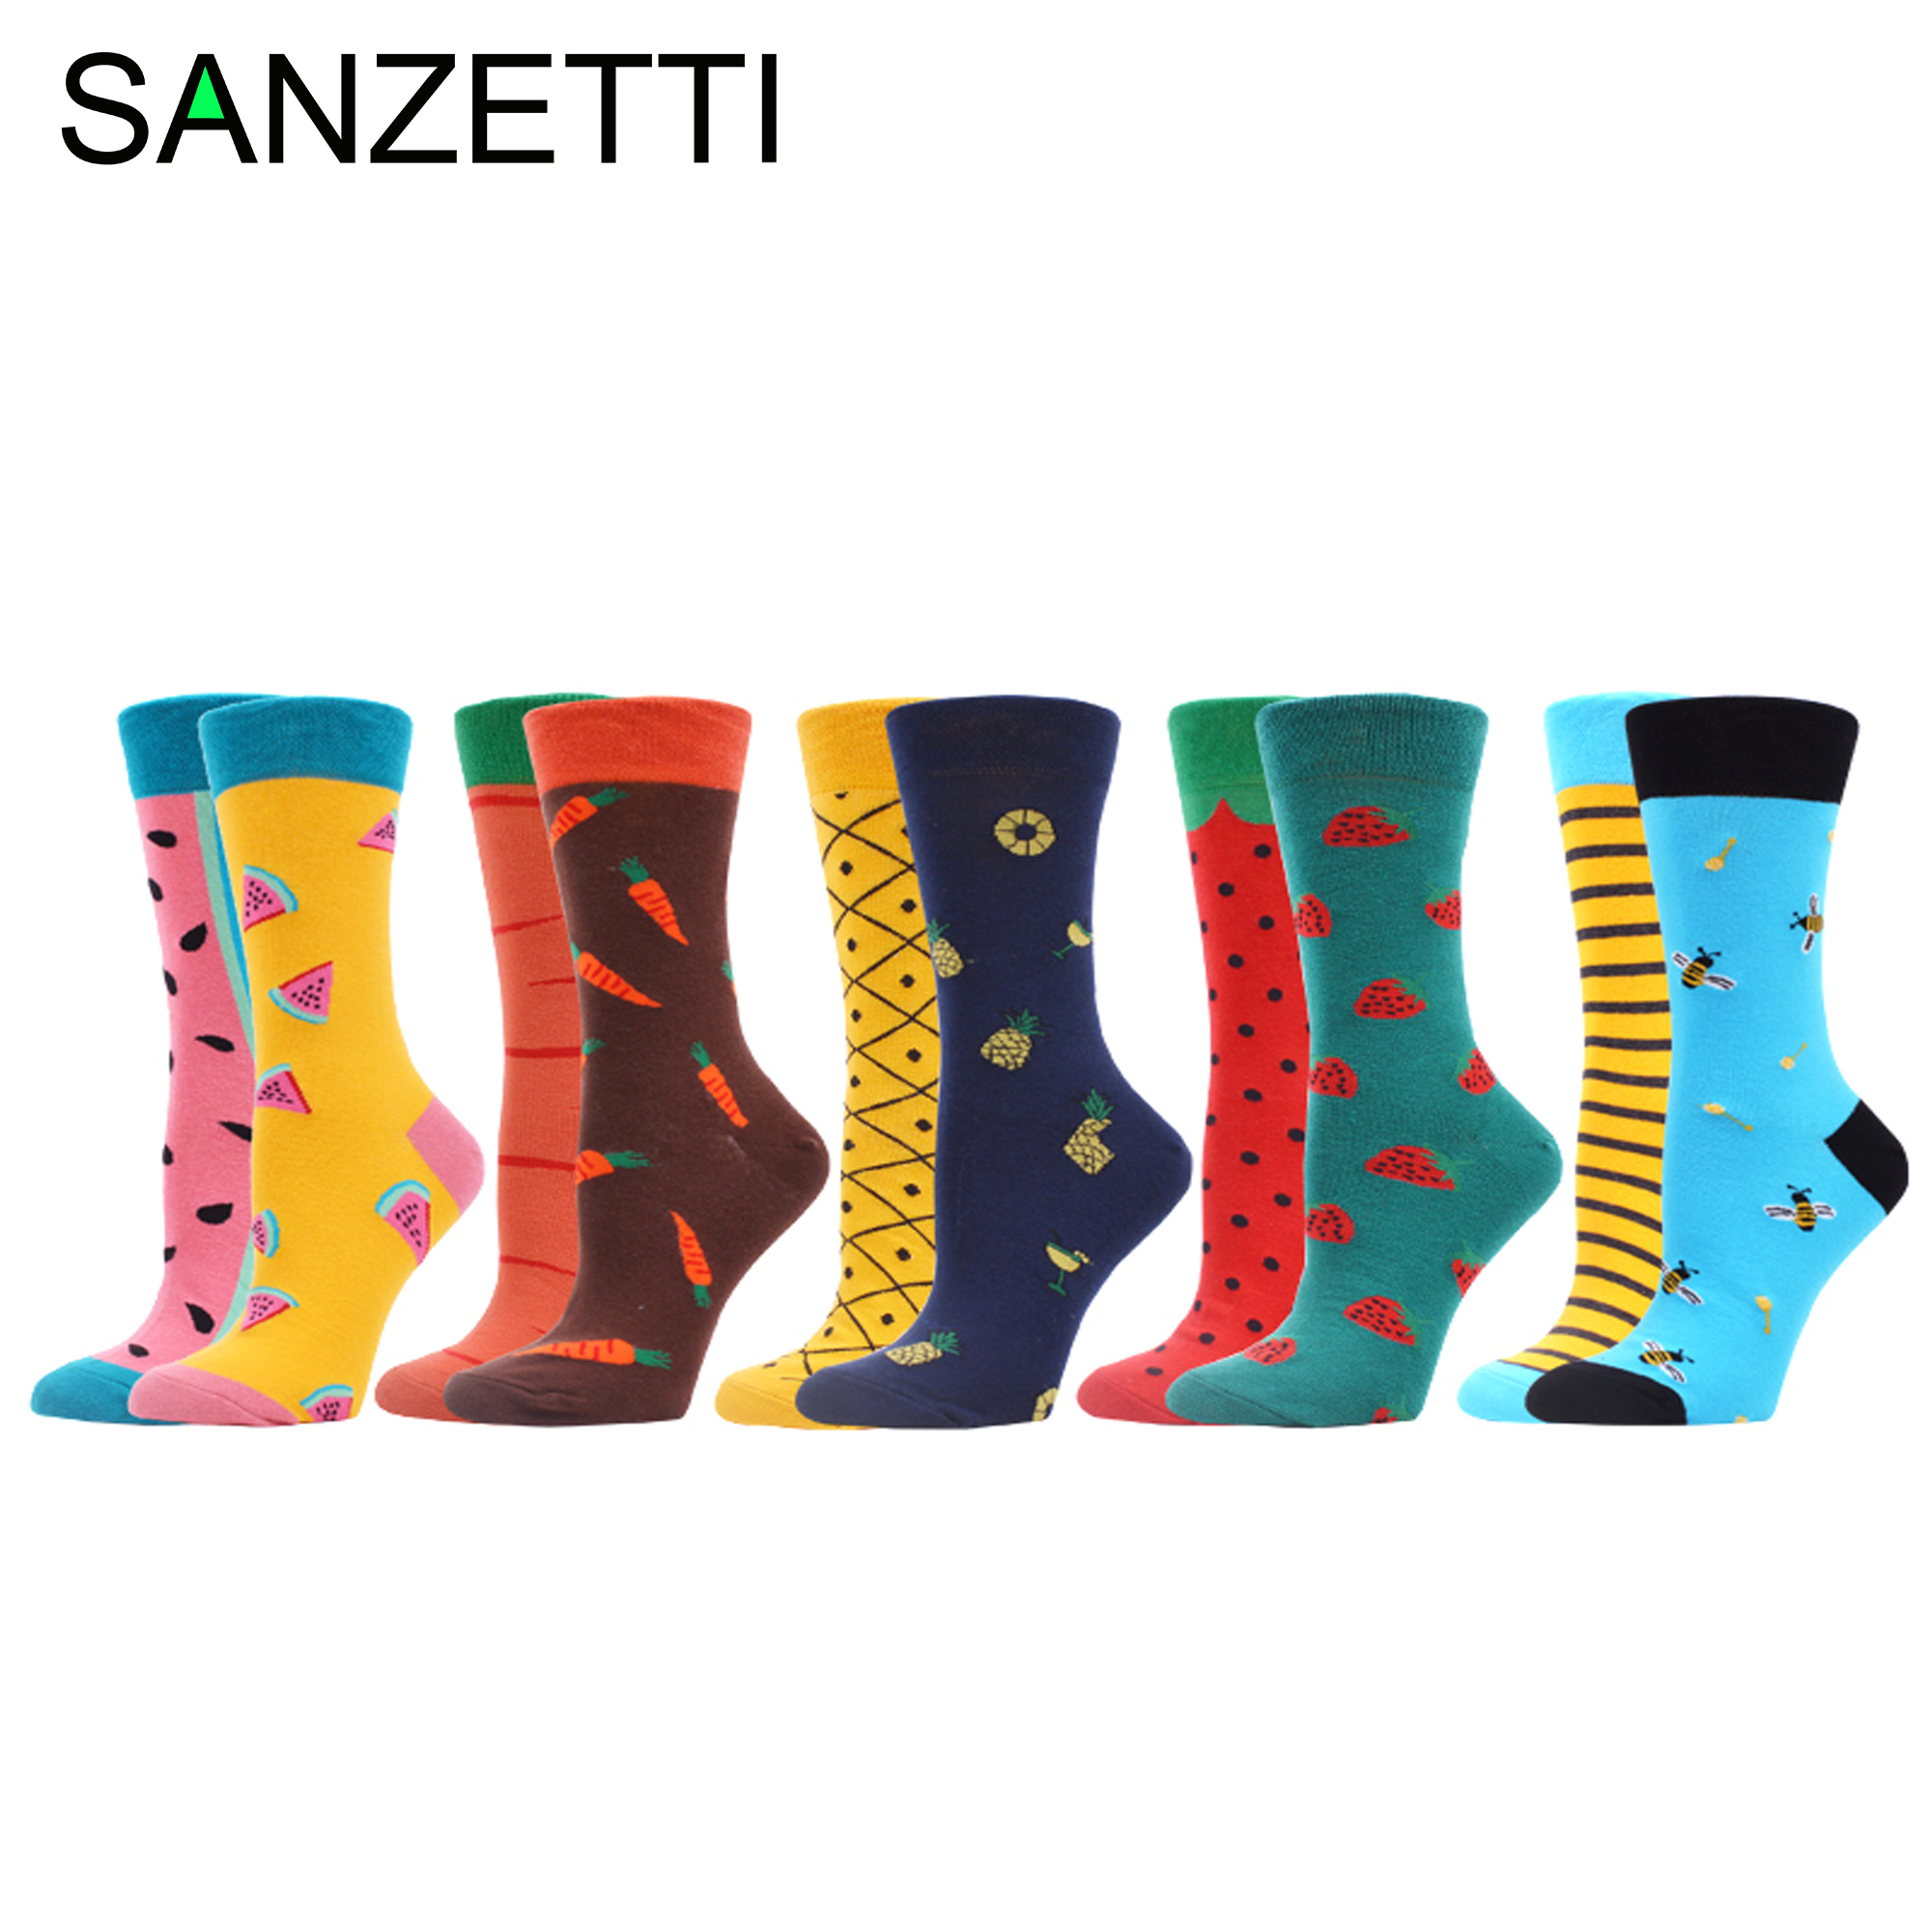 SANZETTI 5 Pairs Women's Funny Colorful Combed Cotton Socks Donut Ice Cream Oil Painting Ankle Socks Novelty Wedding Gifts Socks